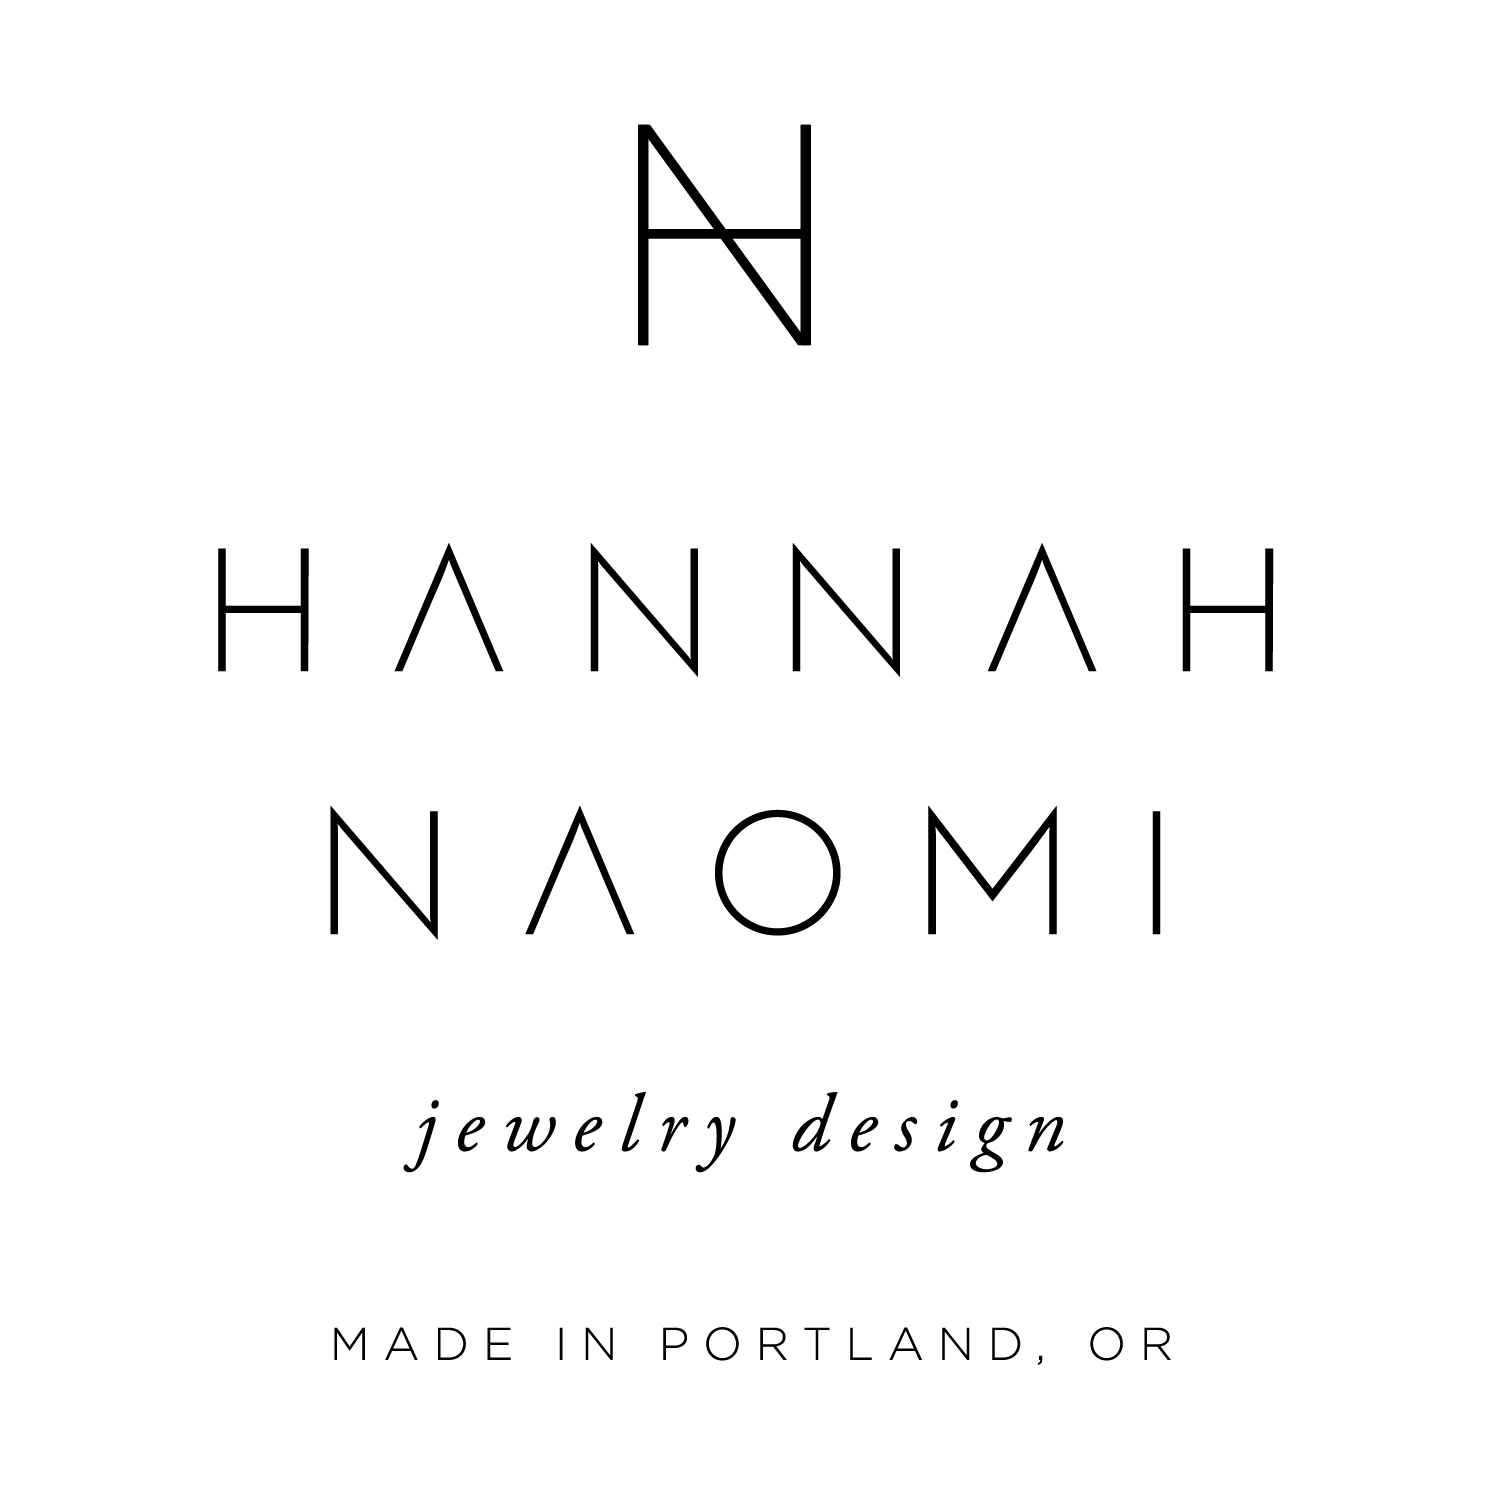 Hannah Naomi Jewelry